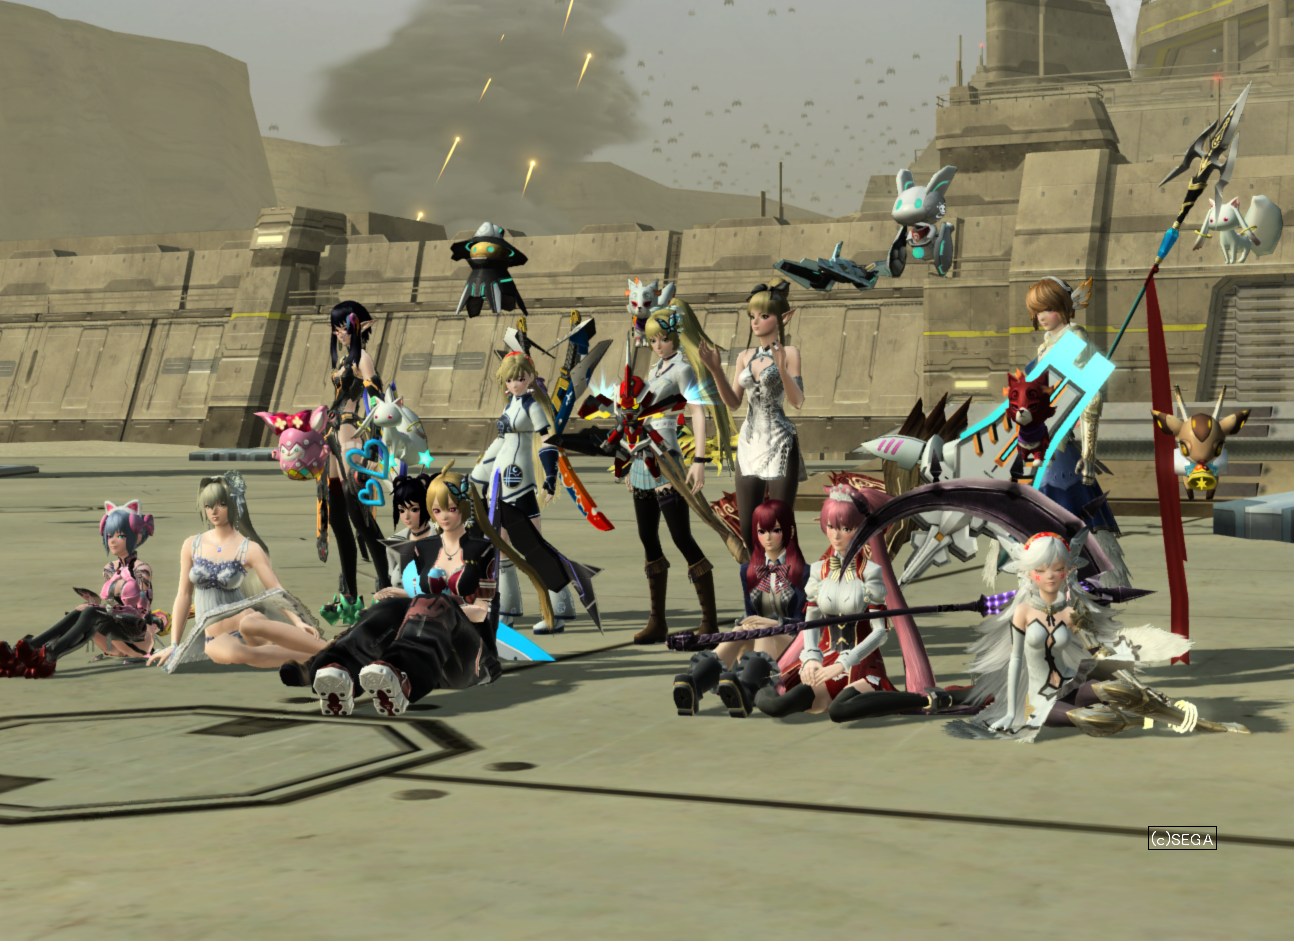 pso20140907_005813_003.png